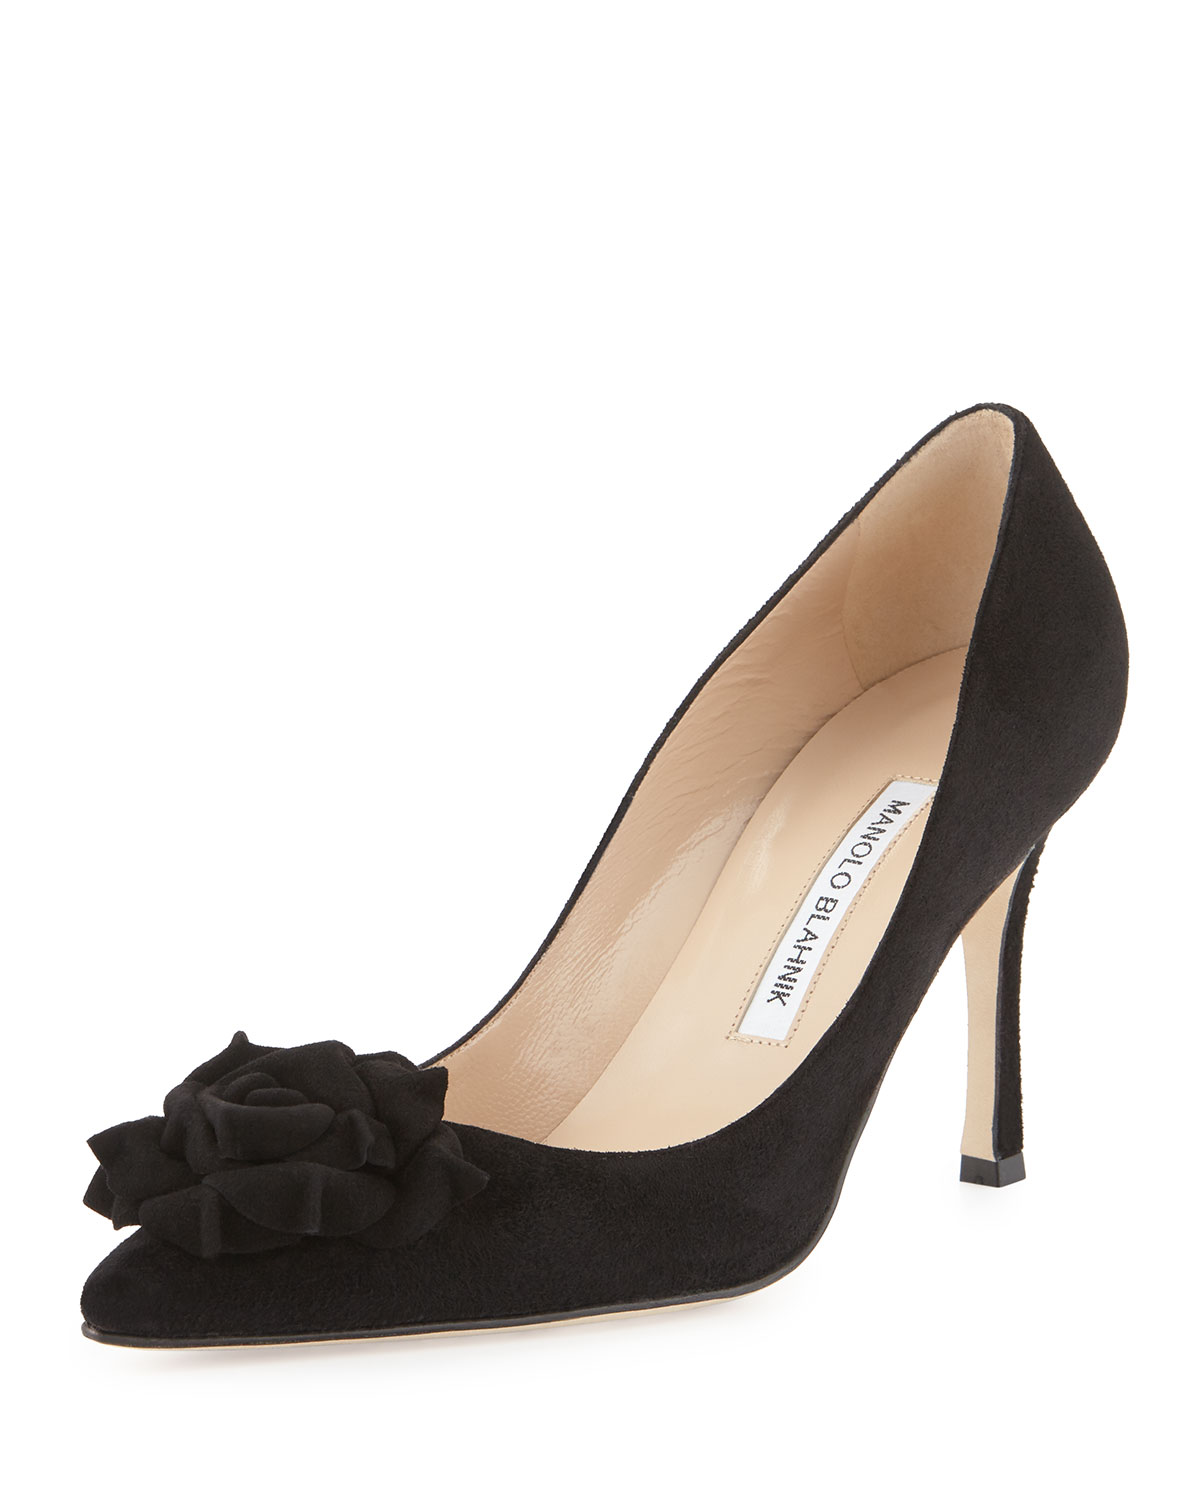 free shipping pay with paypal outlet online shop Manolo Blahnik Lisa 90 pumps outlet best sale pictures cheap online for nice cheap online e0WMvzZm6